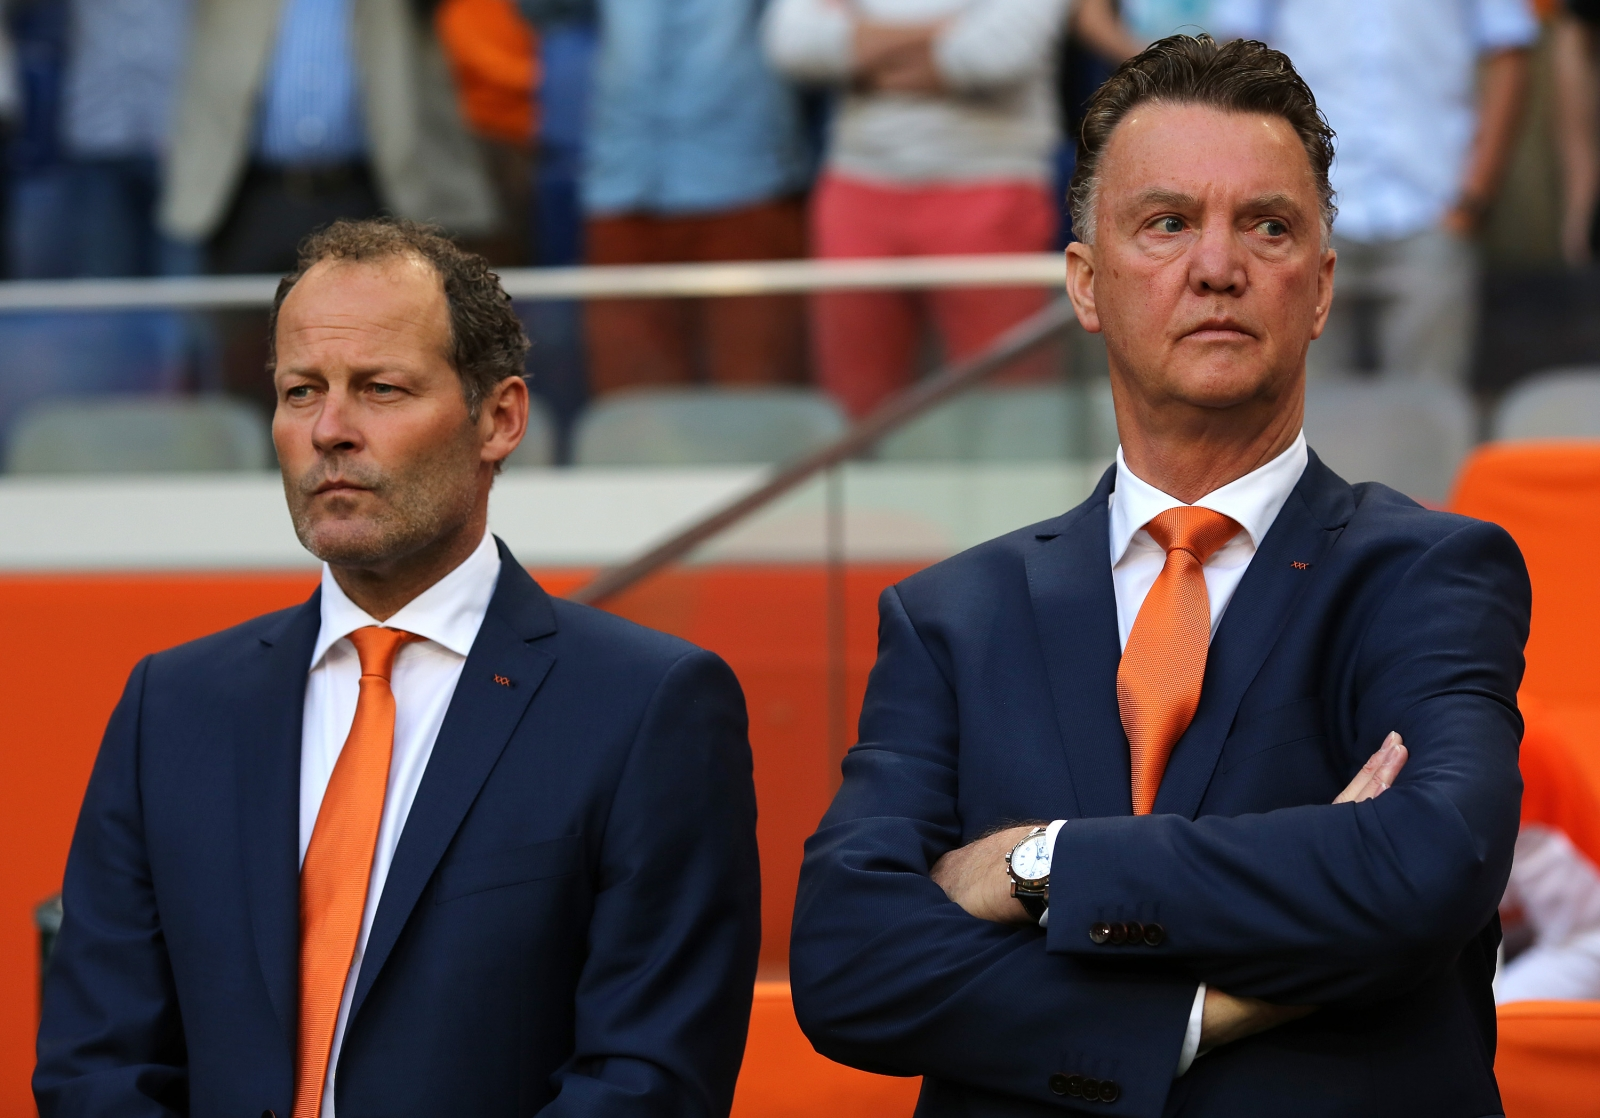 Danny Blind and Louis van Gaal